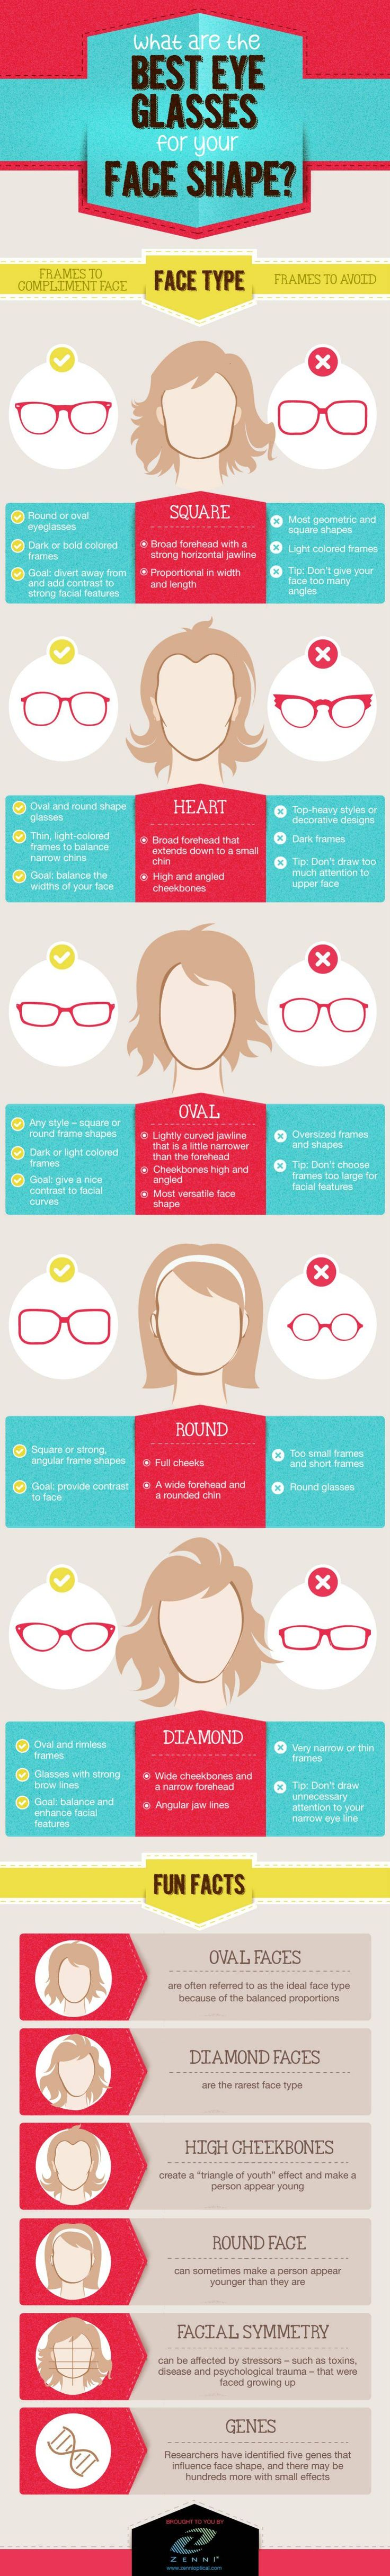 The best eye glasses for your face shape